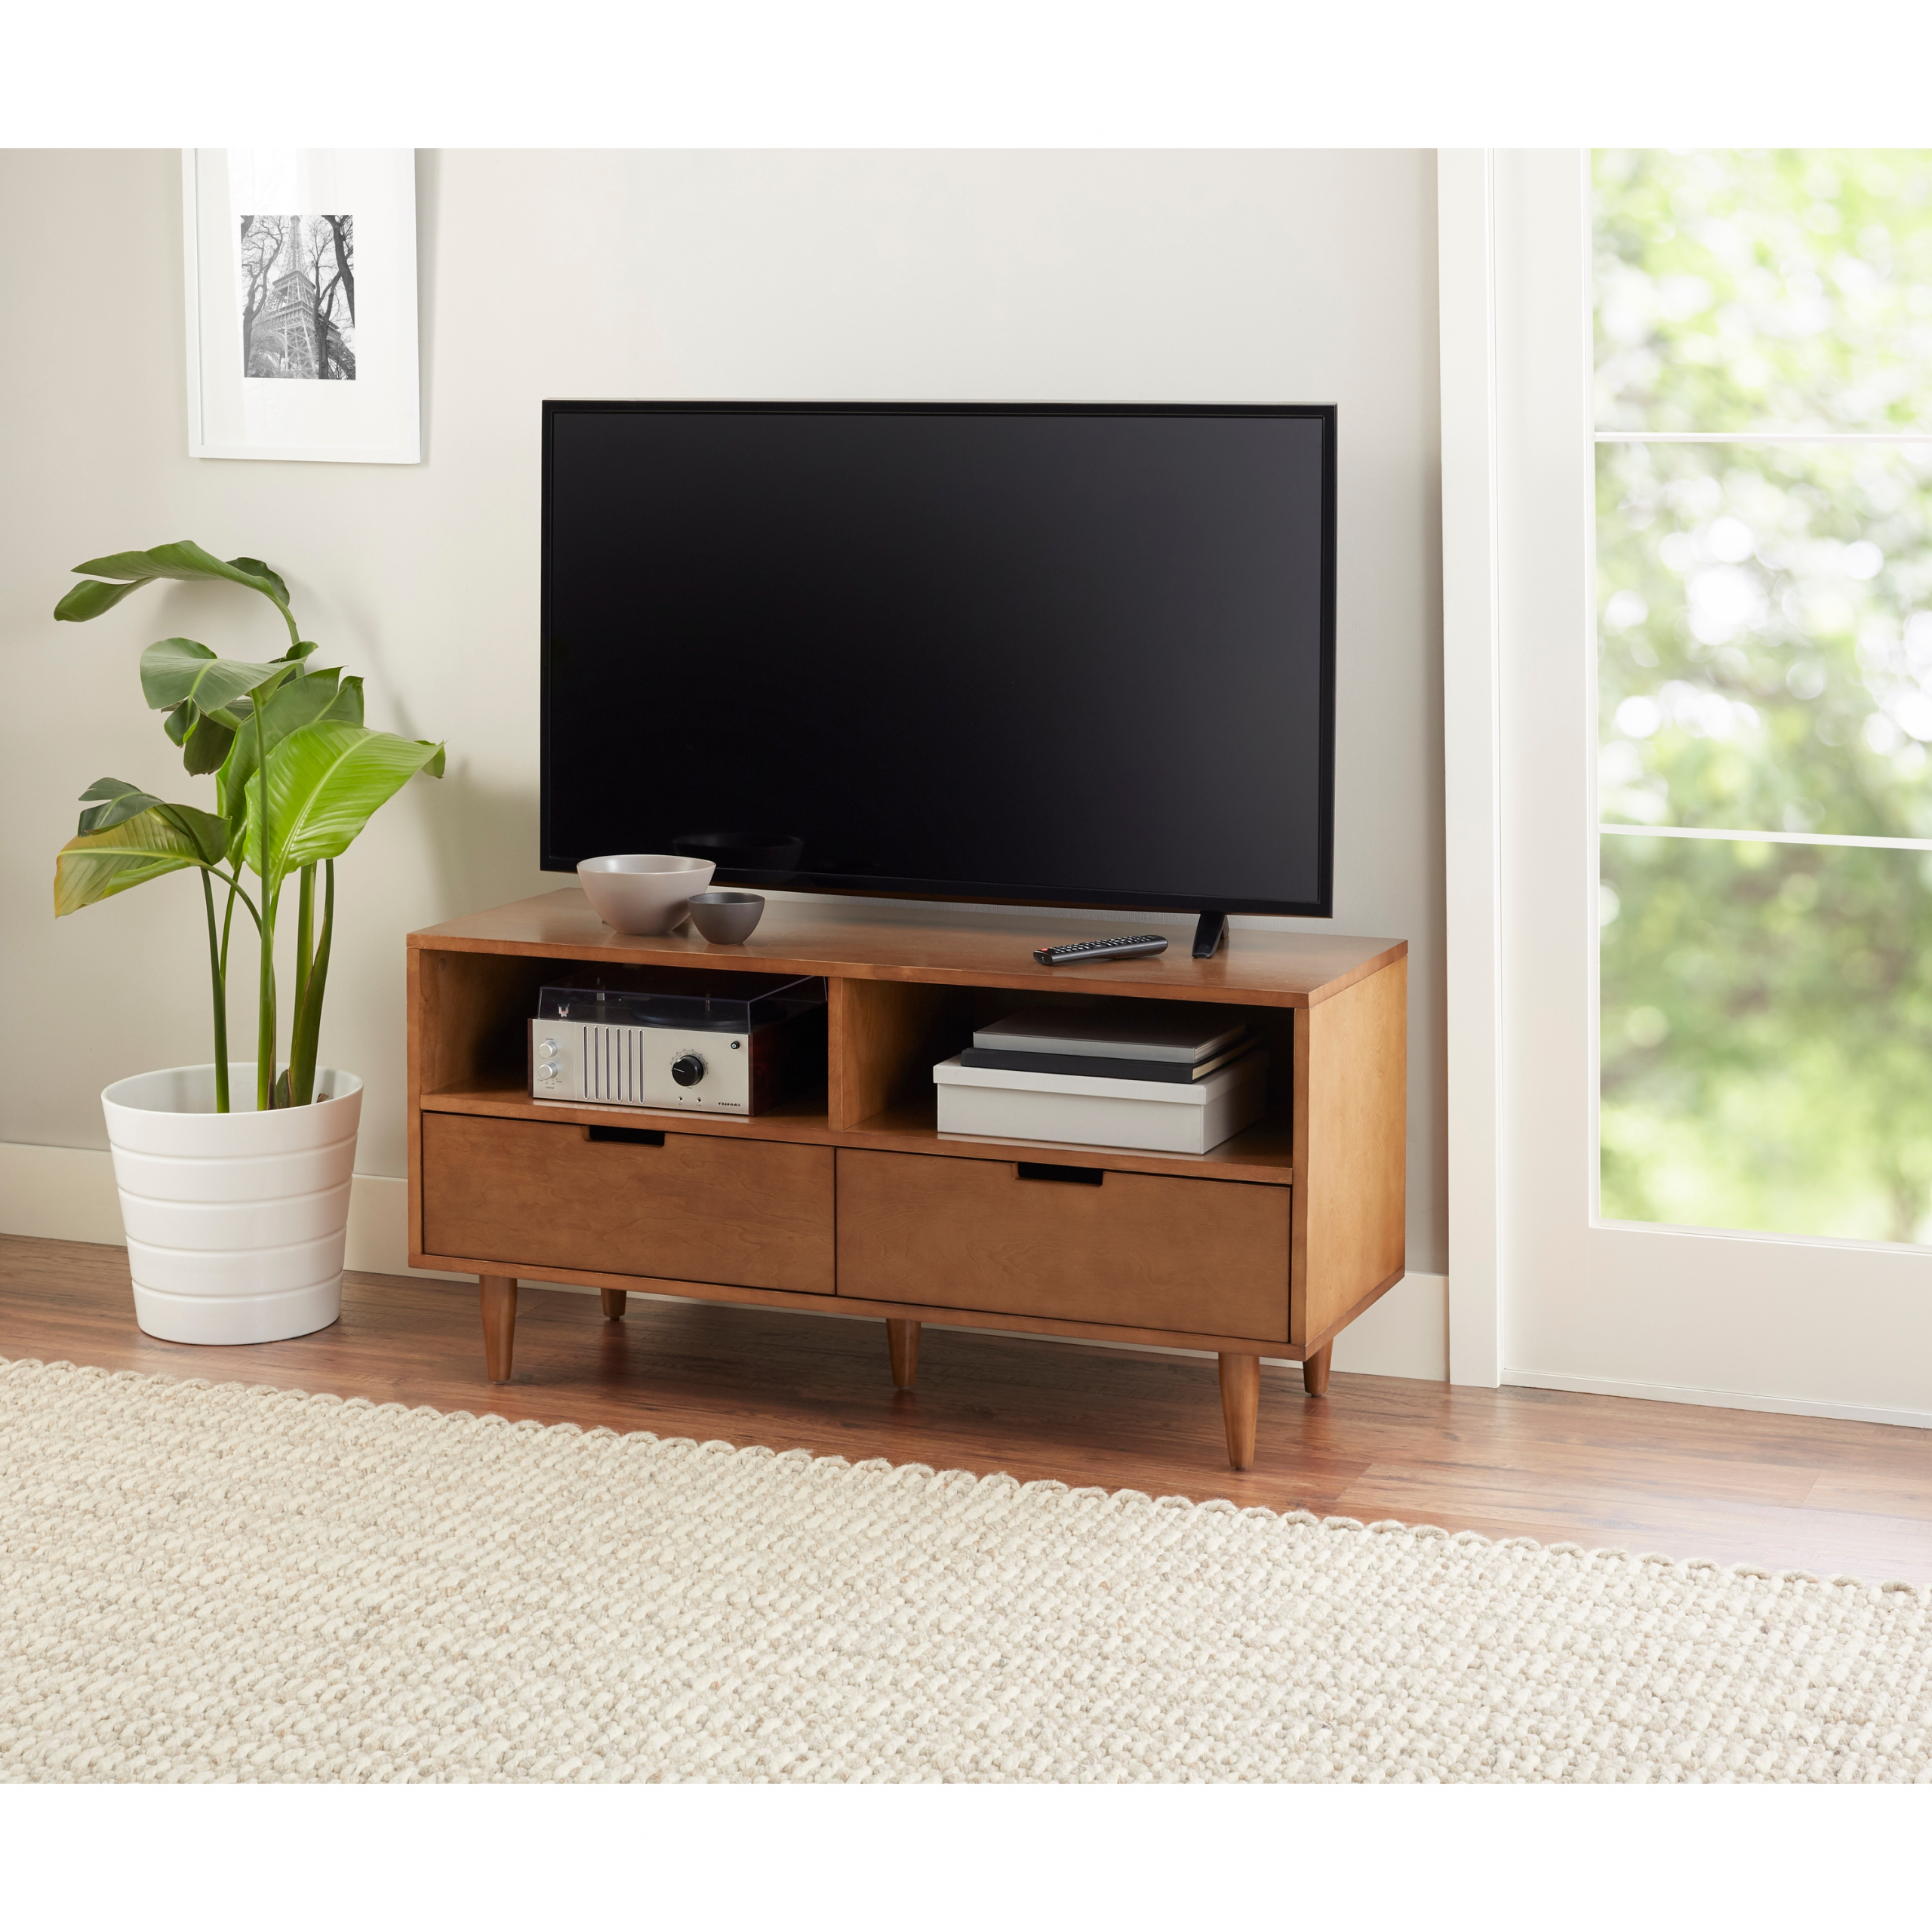 Better Homes & Gardens Flynn Tv Stand For Tvs Up To 55 Regarding Mainstays Tv Stands For Tvs With Multiple Colors (View 9 of 20)